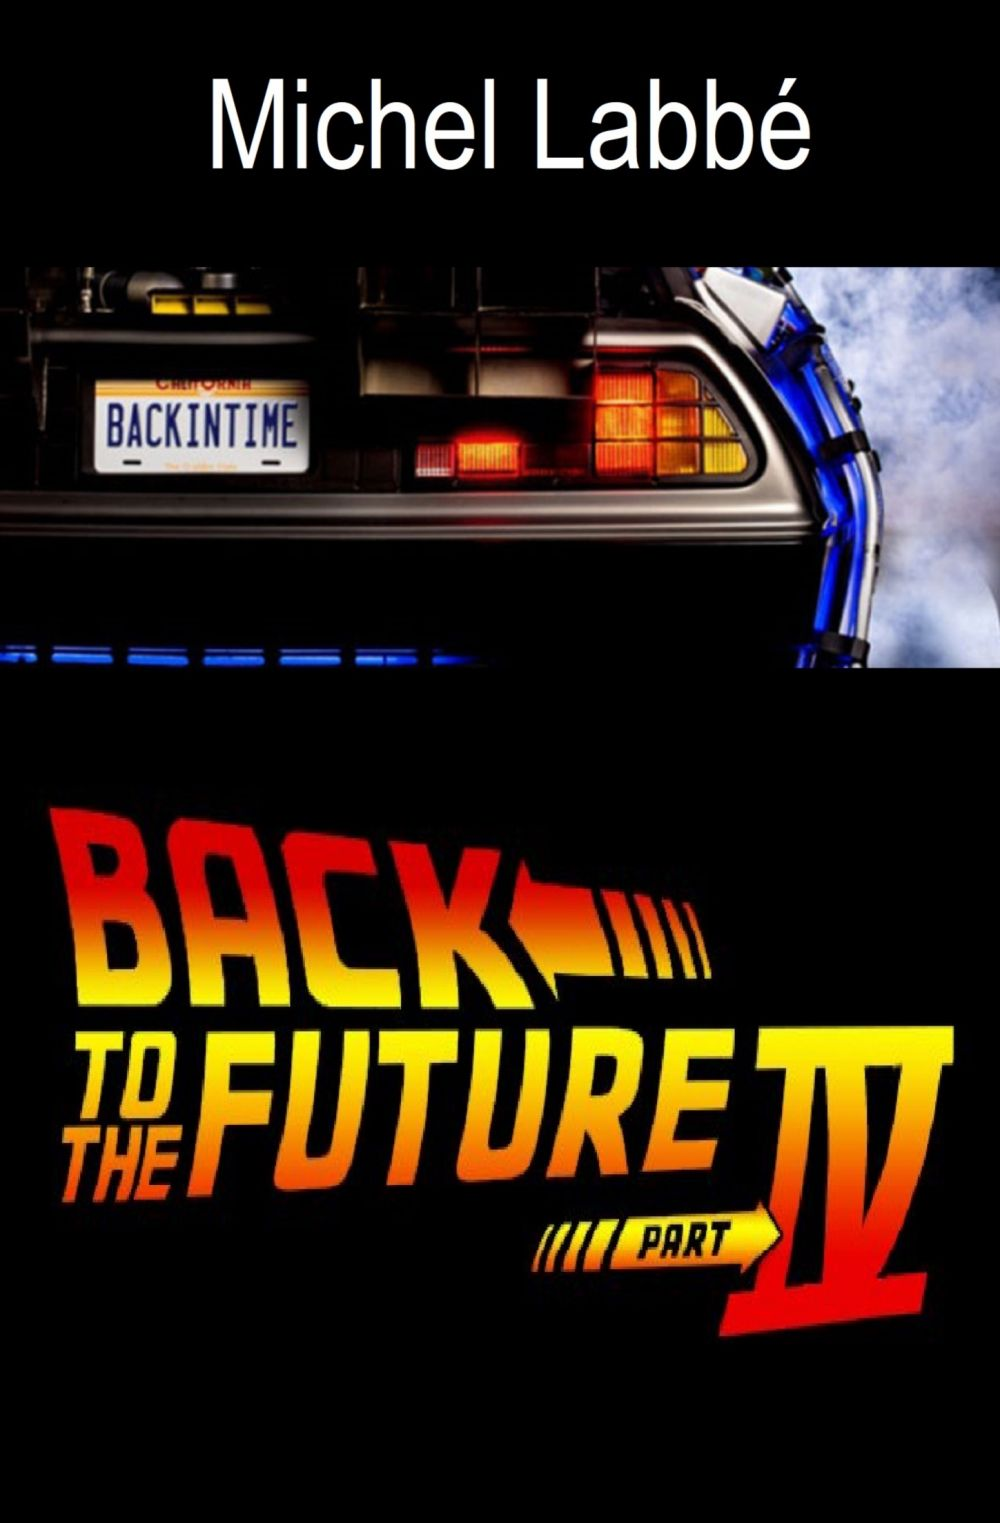 BACK TO THE FUTURE IV